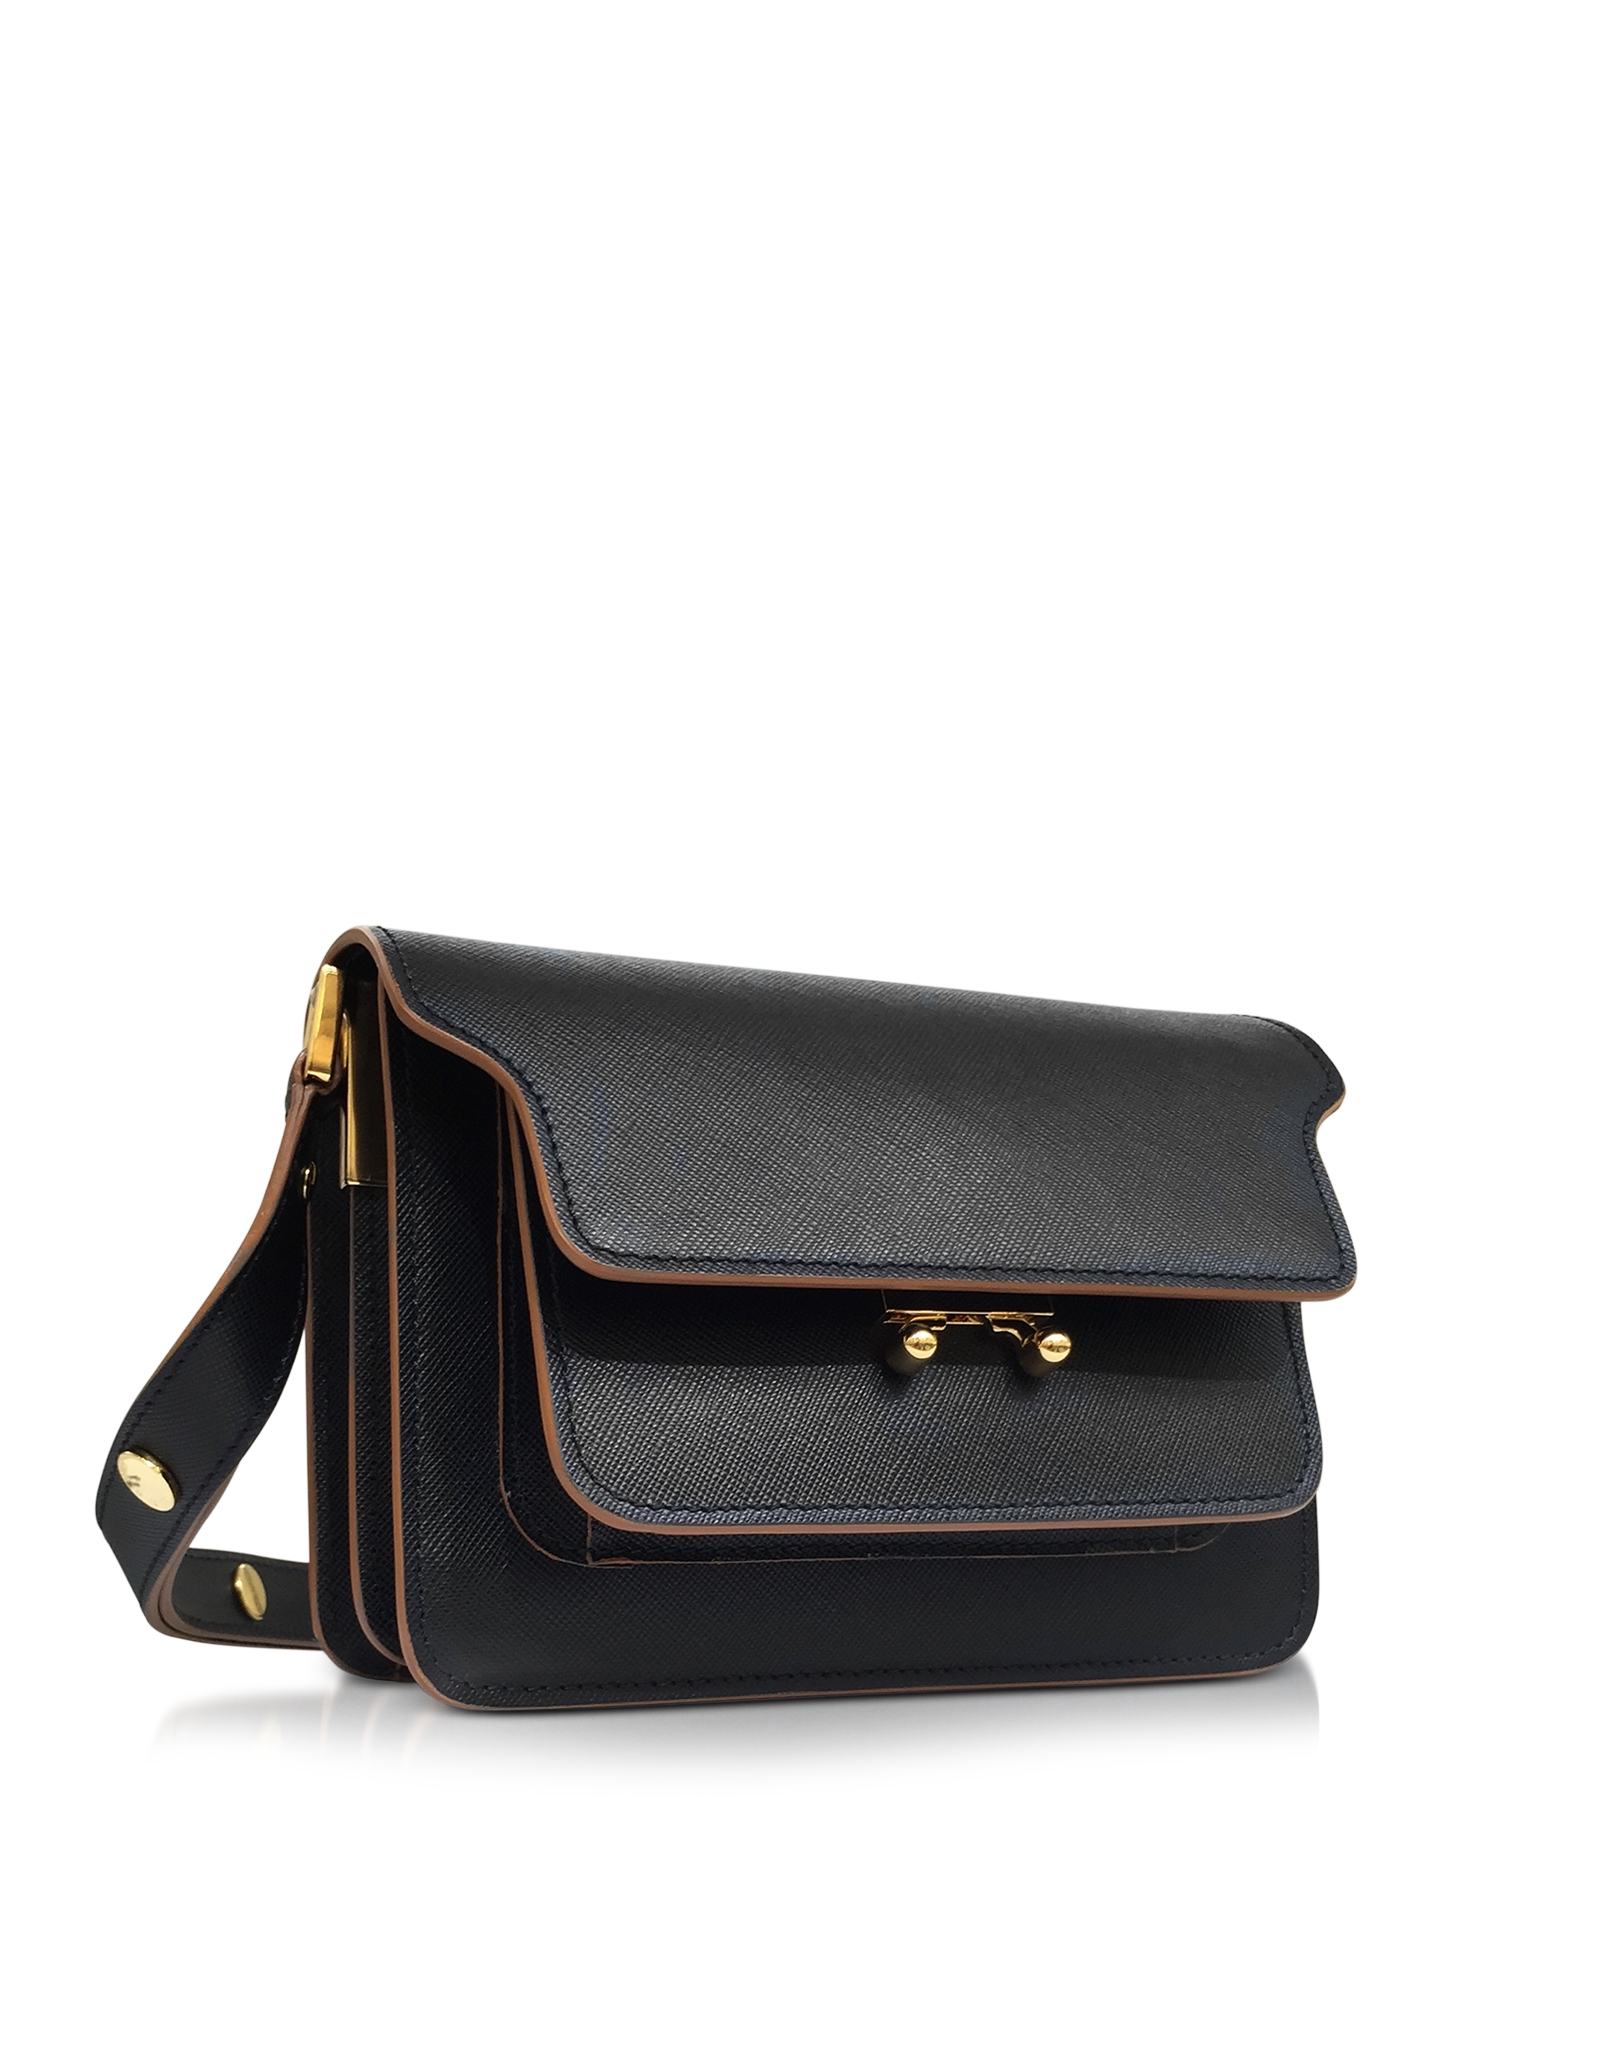 Mini Trunk Bag in Black Matte Calfskin Marni Free Shipping Professional Buy Authentic Online Hot Sale neAMt7rv